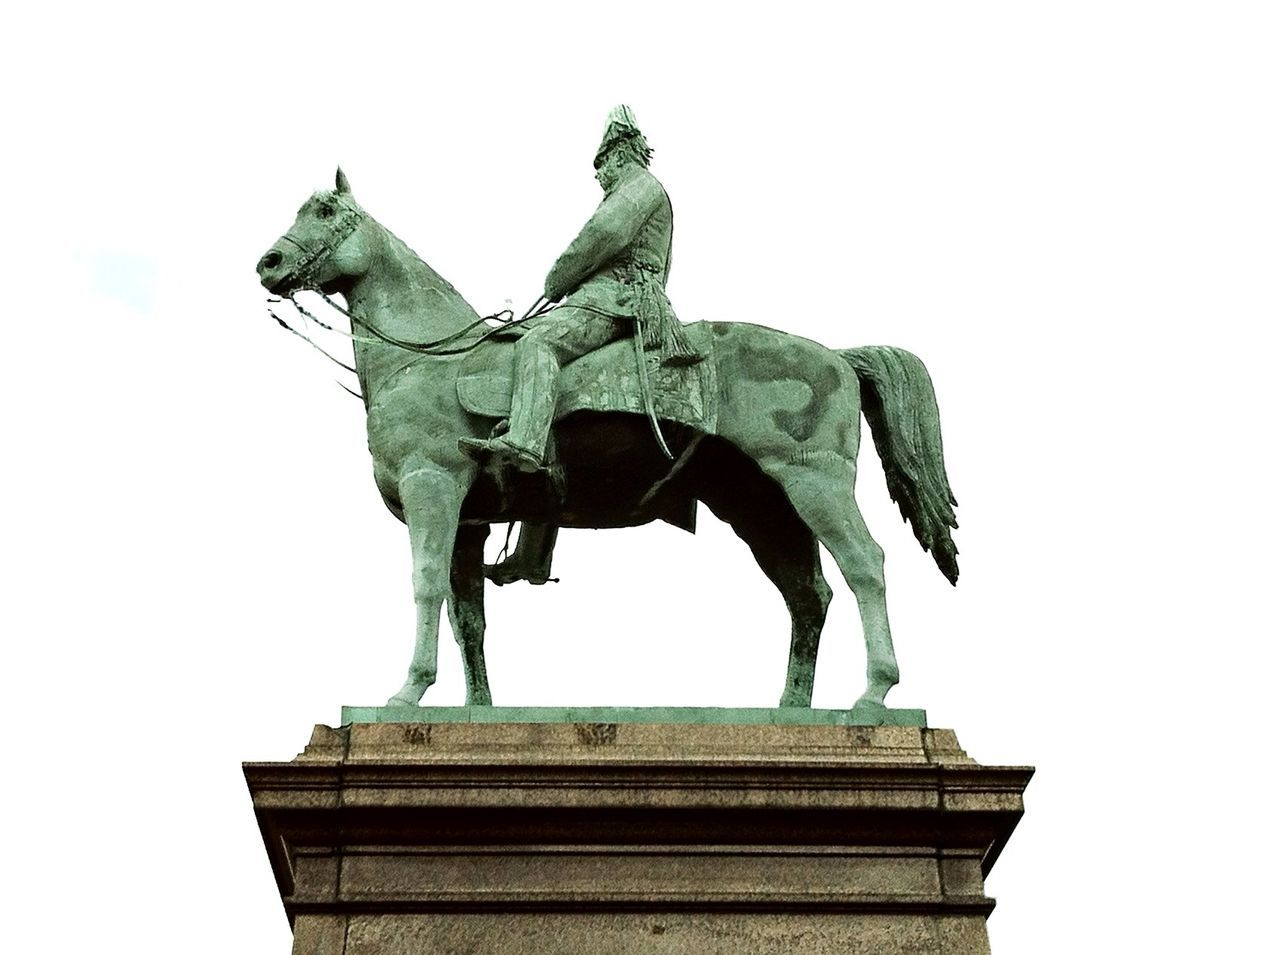 statue, sculpture, horse, low angle view, animal representation, art and craft, outdoors, no people, day, clear sky, built structure, sky